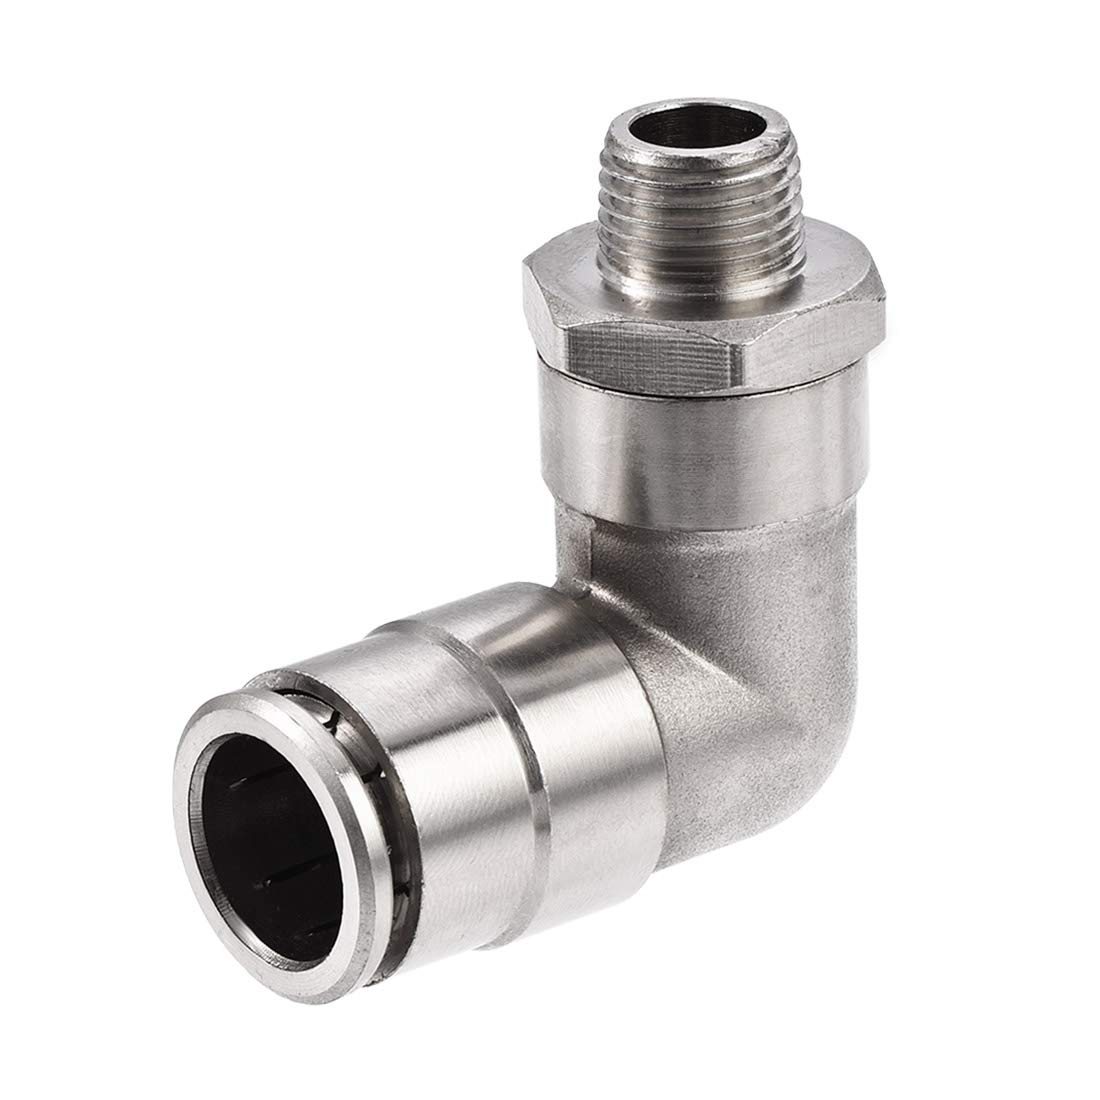 uxcell Push to Connect Tube Fitting 14mm Tube to 1/4PT Male Elbow L Shape